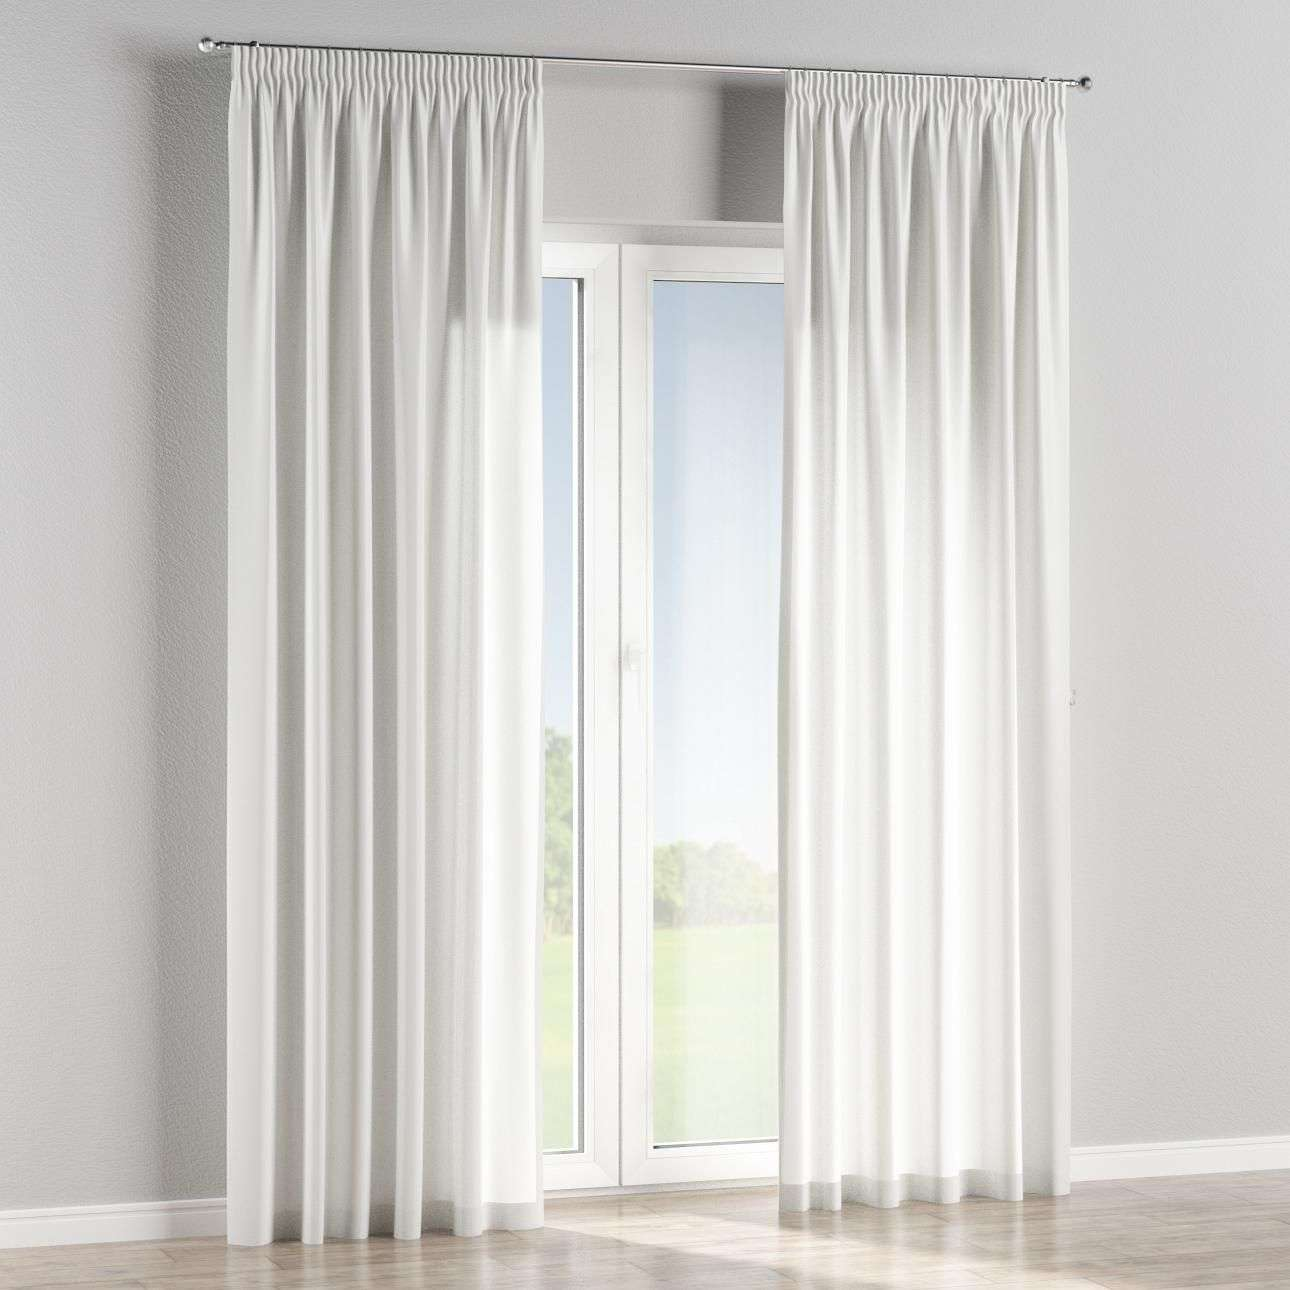 Pencil pleat curtains in collection Norge, fabric: 140-94